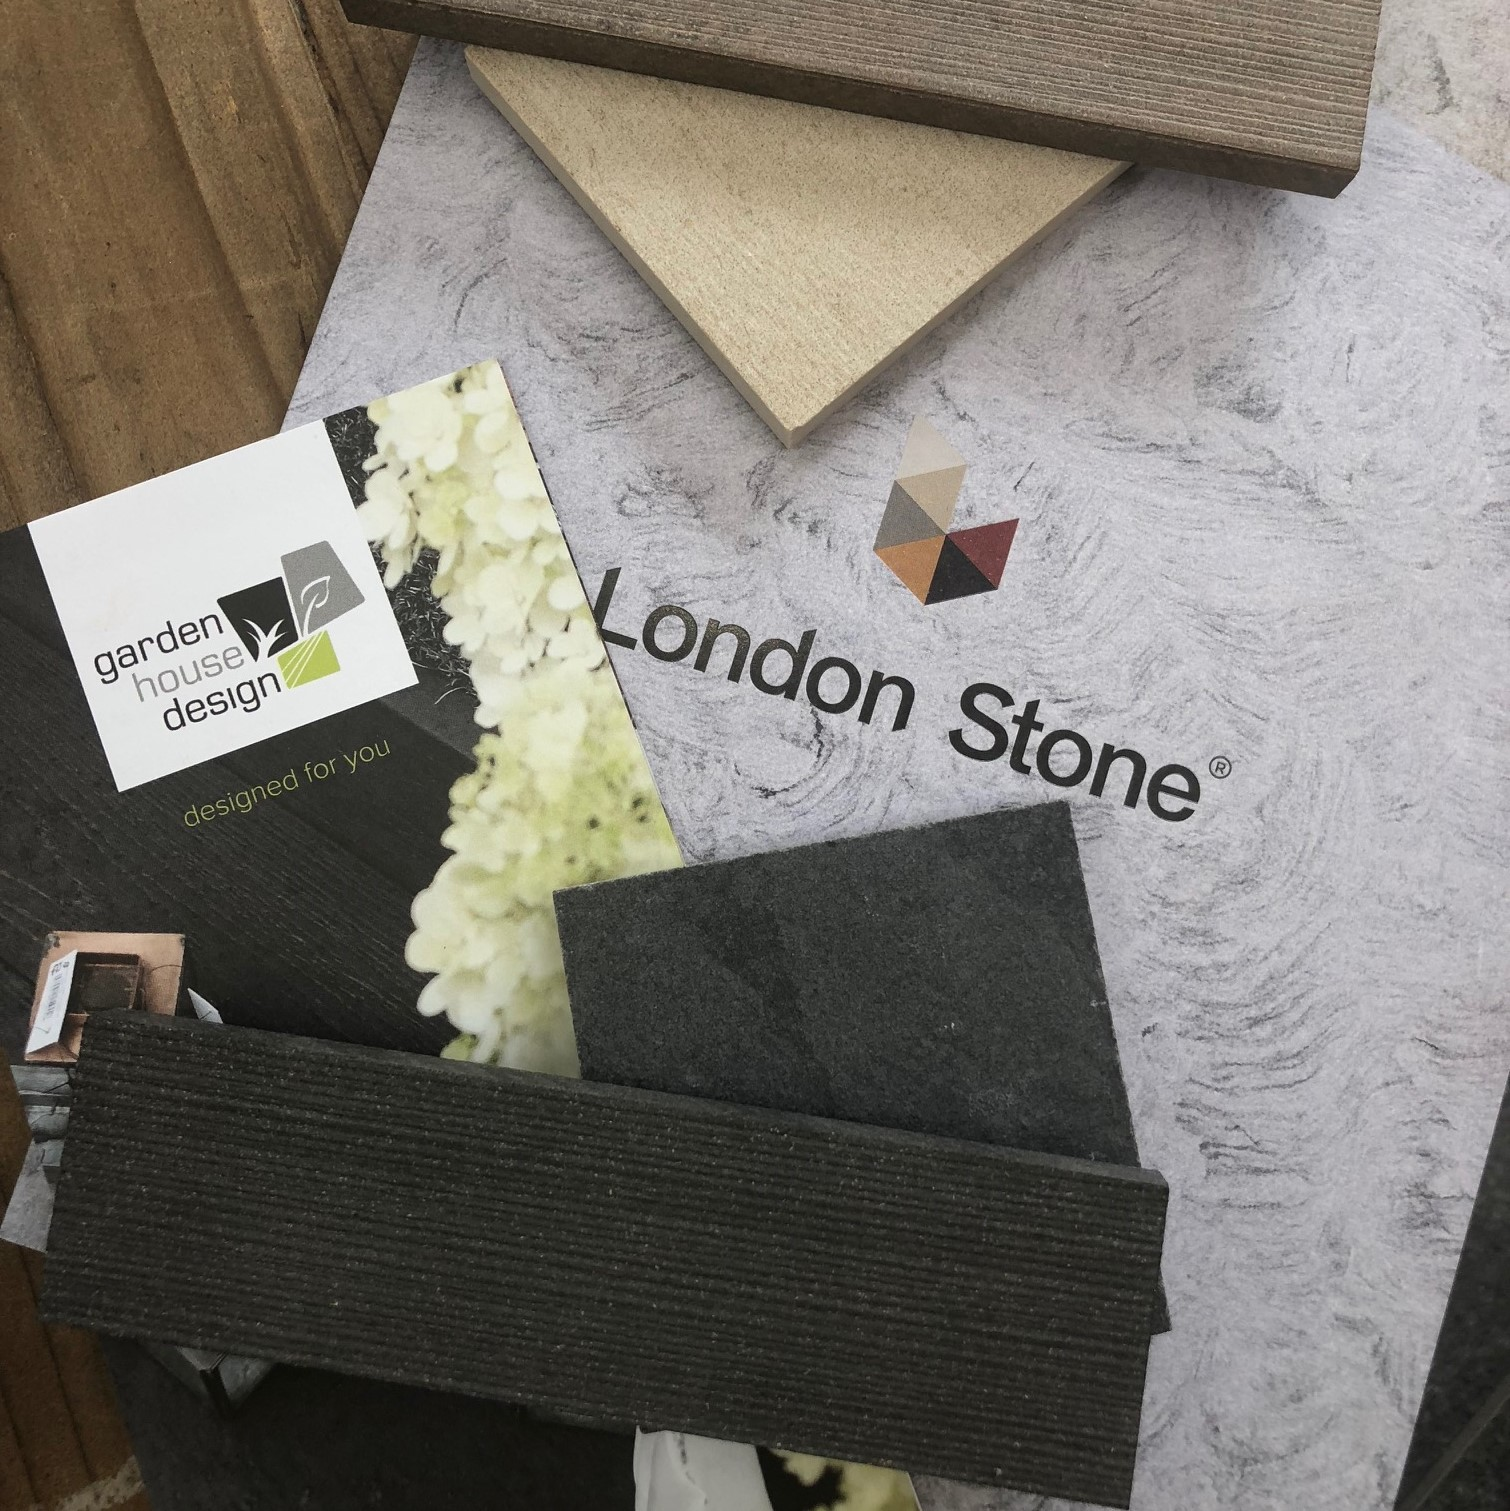 View London Stone Paving products